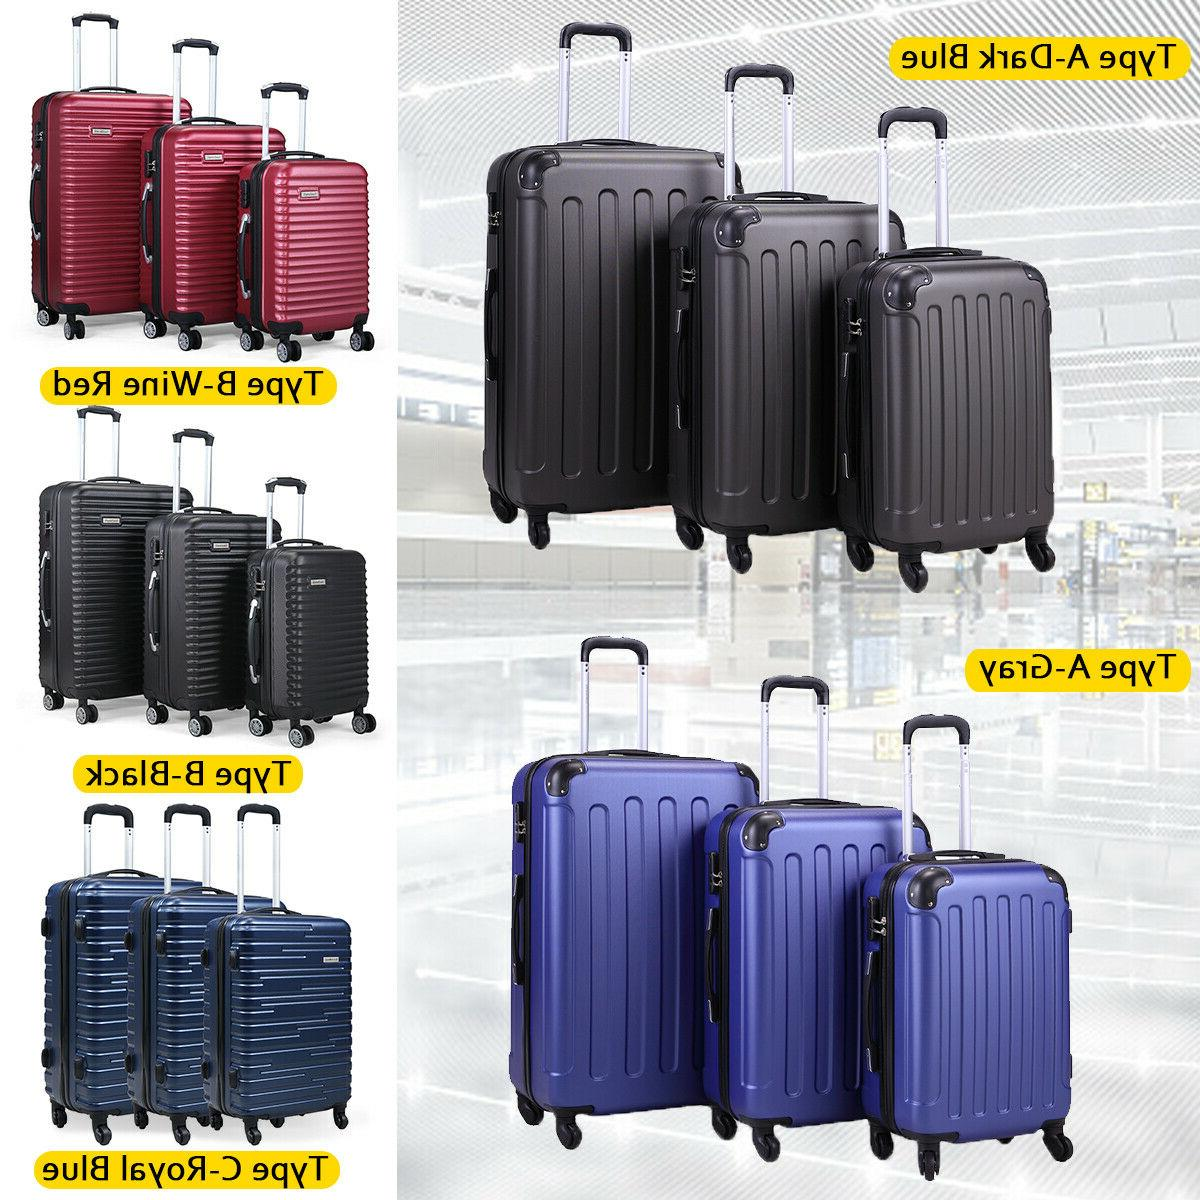 3 Piece Luggage Carry On Cover Travel ABS+PC